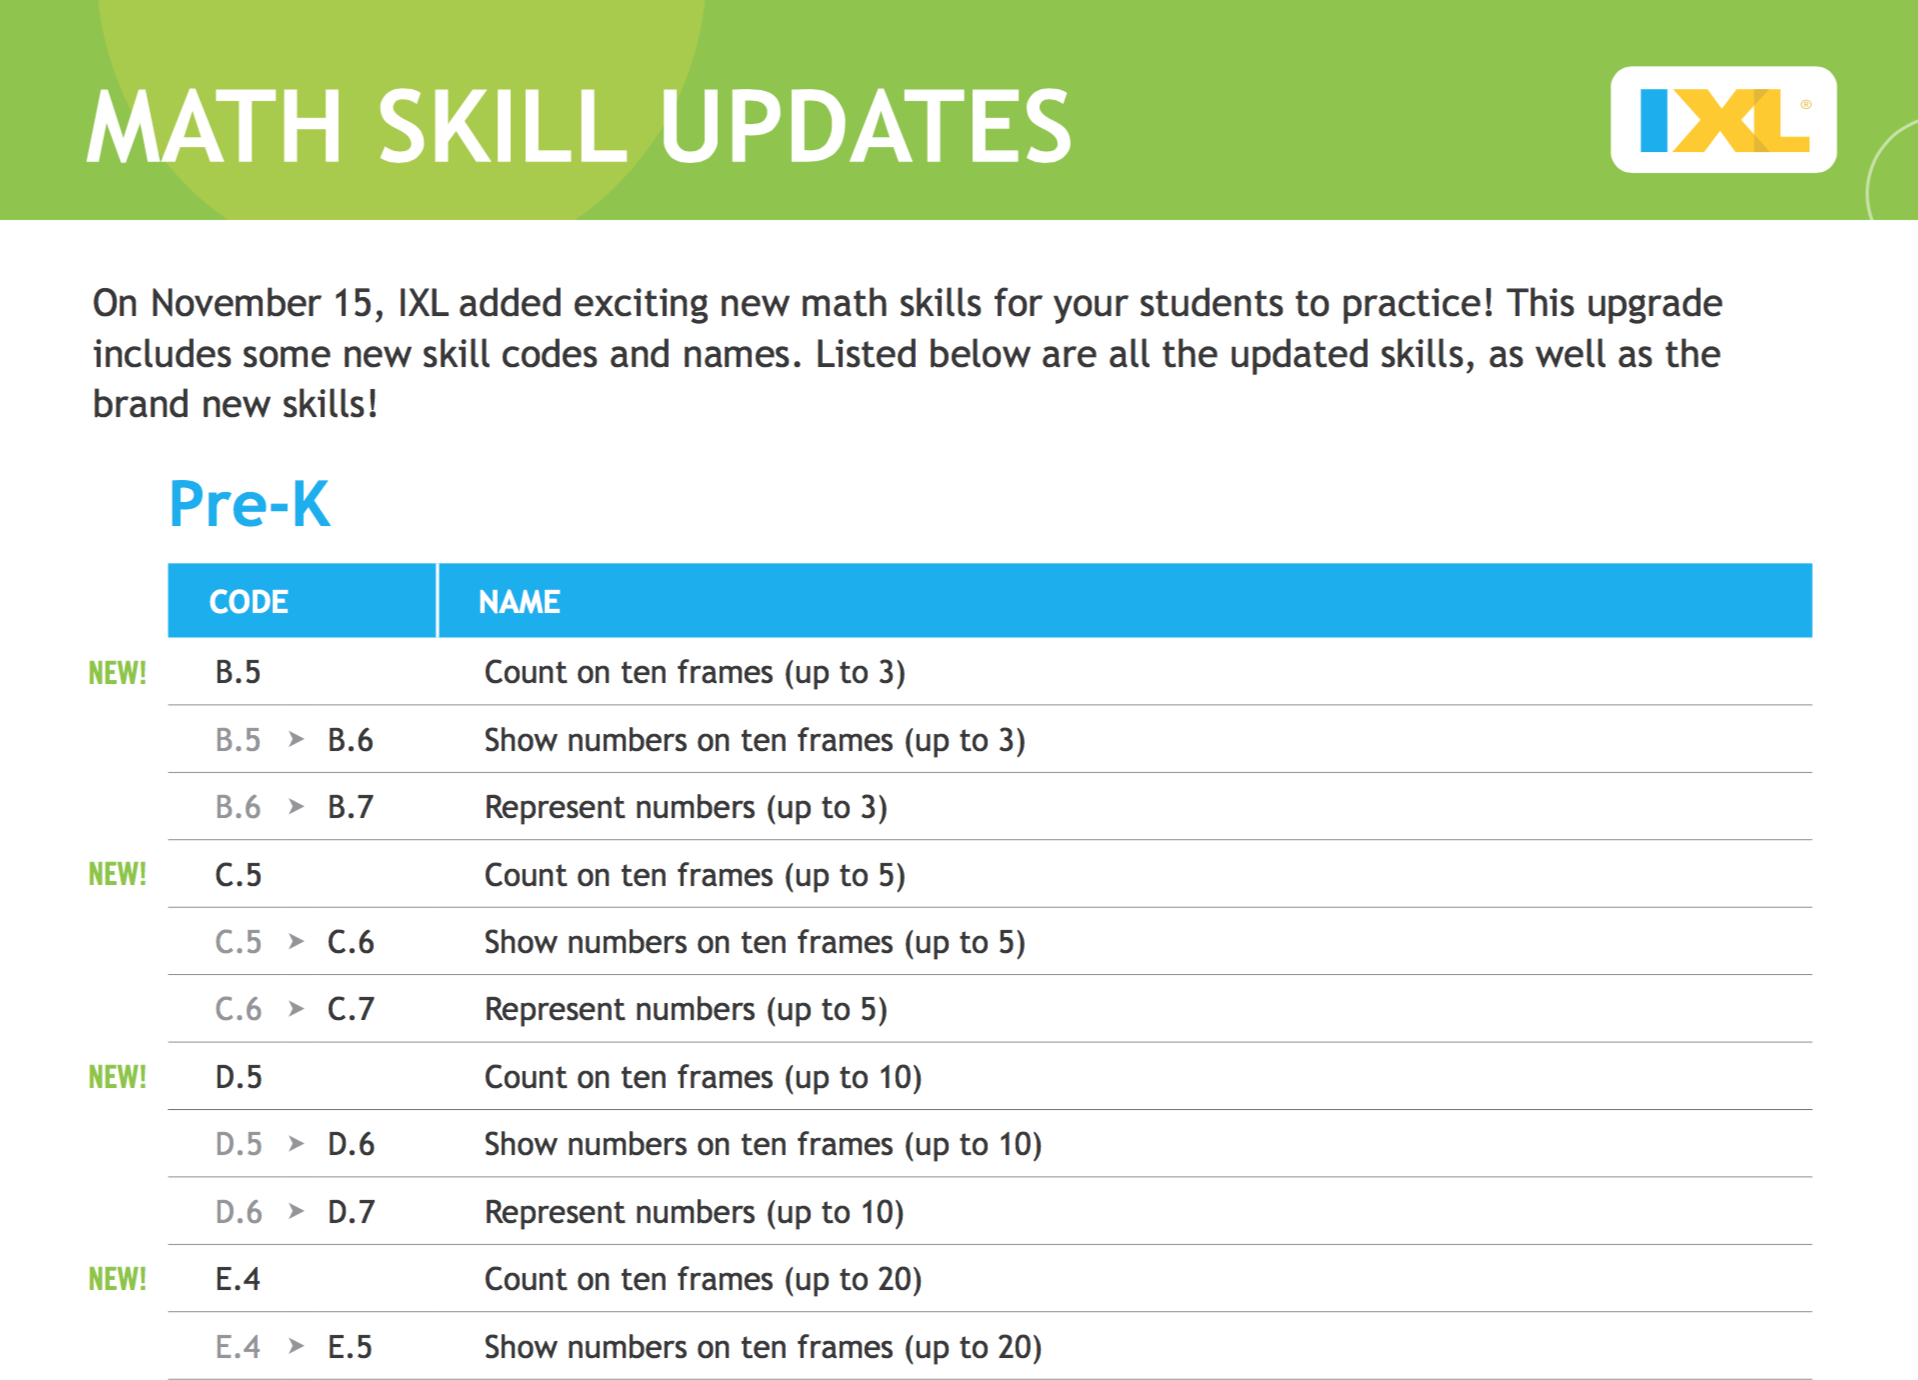 New Math Skills on IXL! Check Out Our Handy PDF to See the Updates